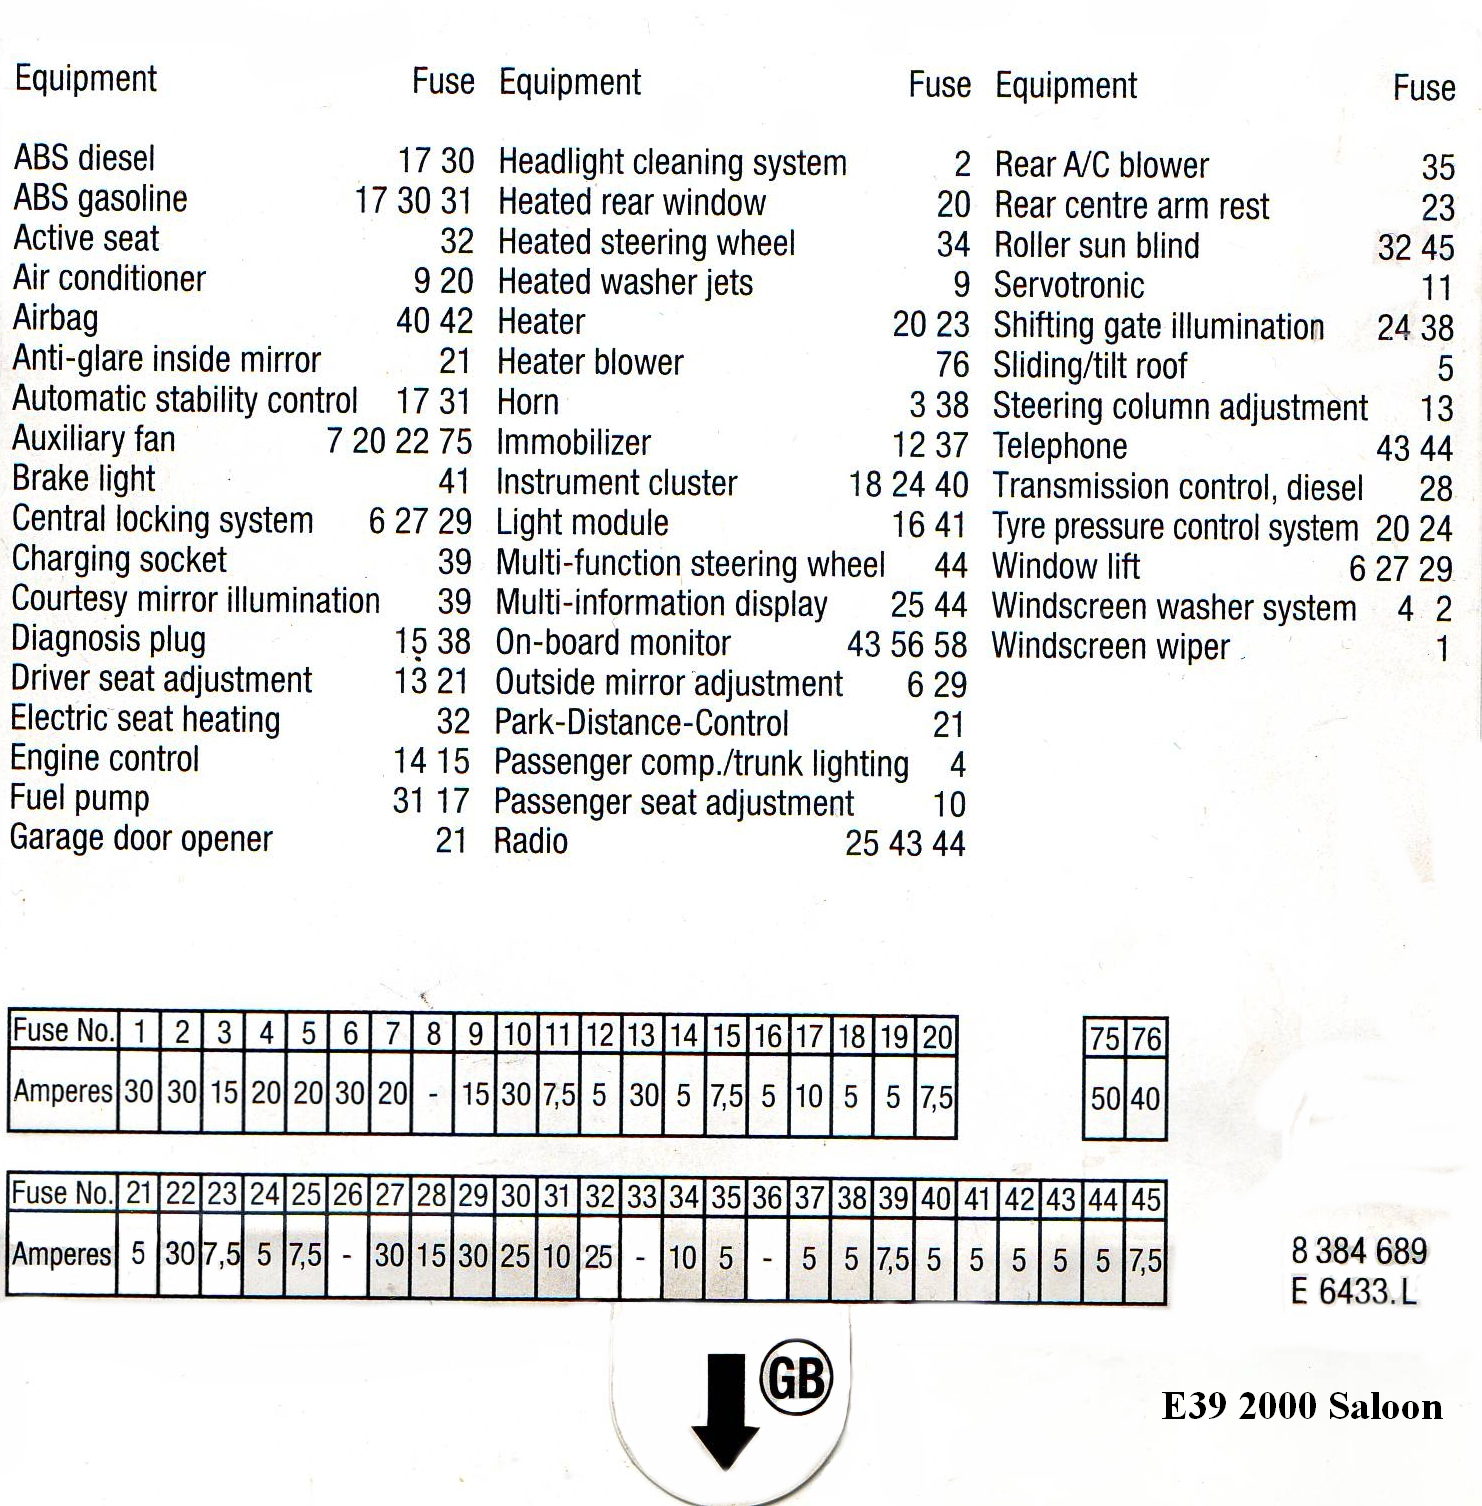 E39 Fuse Box Wiring Diagram Data Gm Terminals Library Under Seat